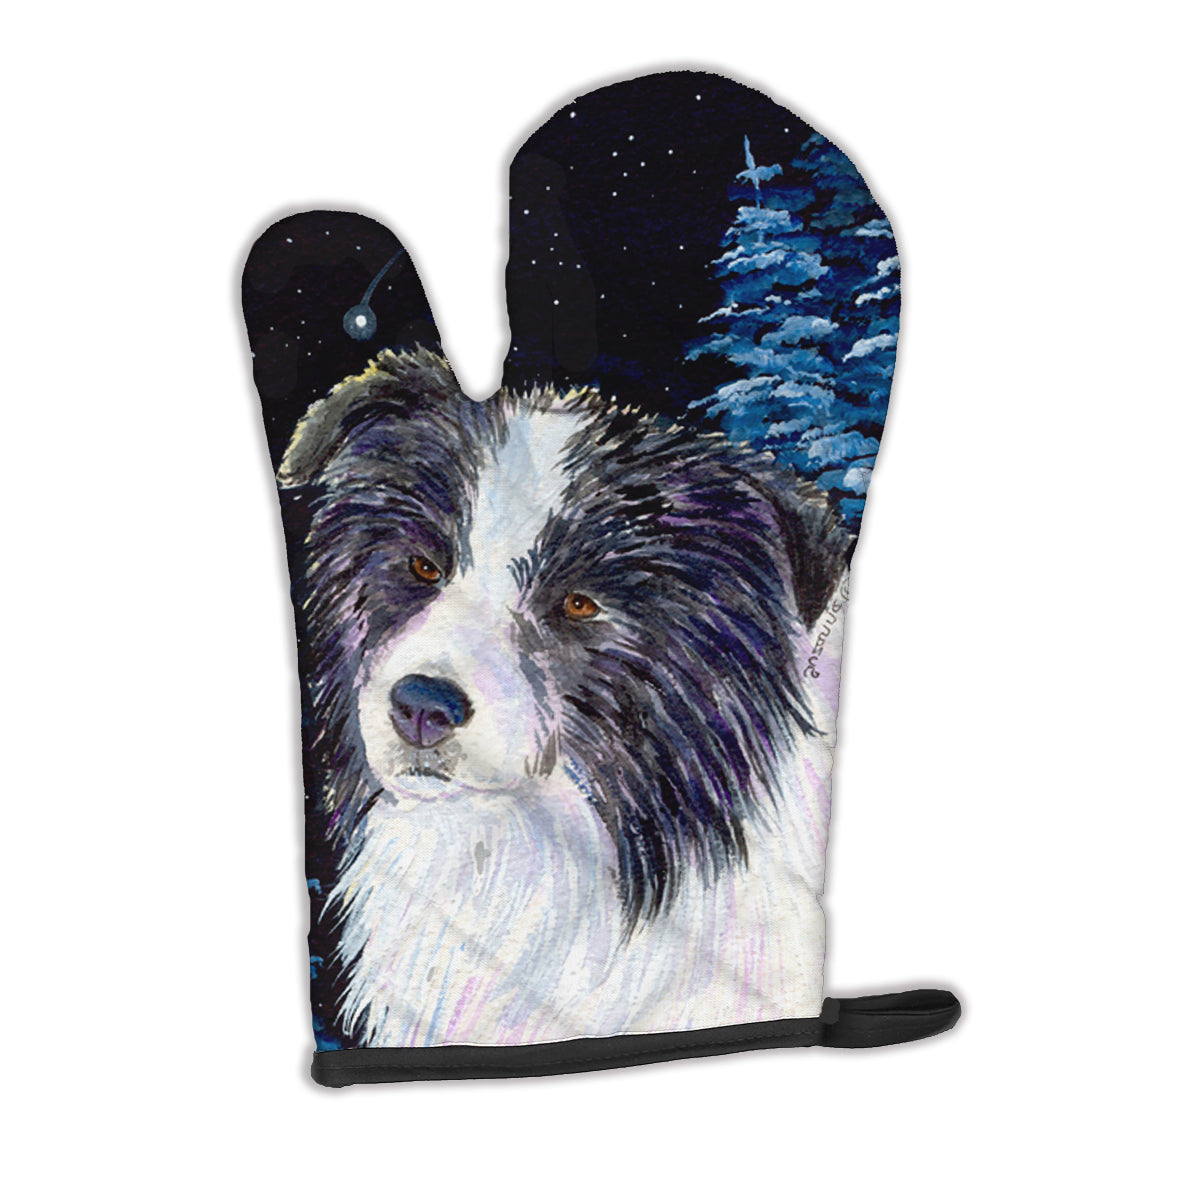 Starry Night Border Collie Oven Mitt SS8558OVMT by Caroline's Treasures